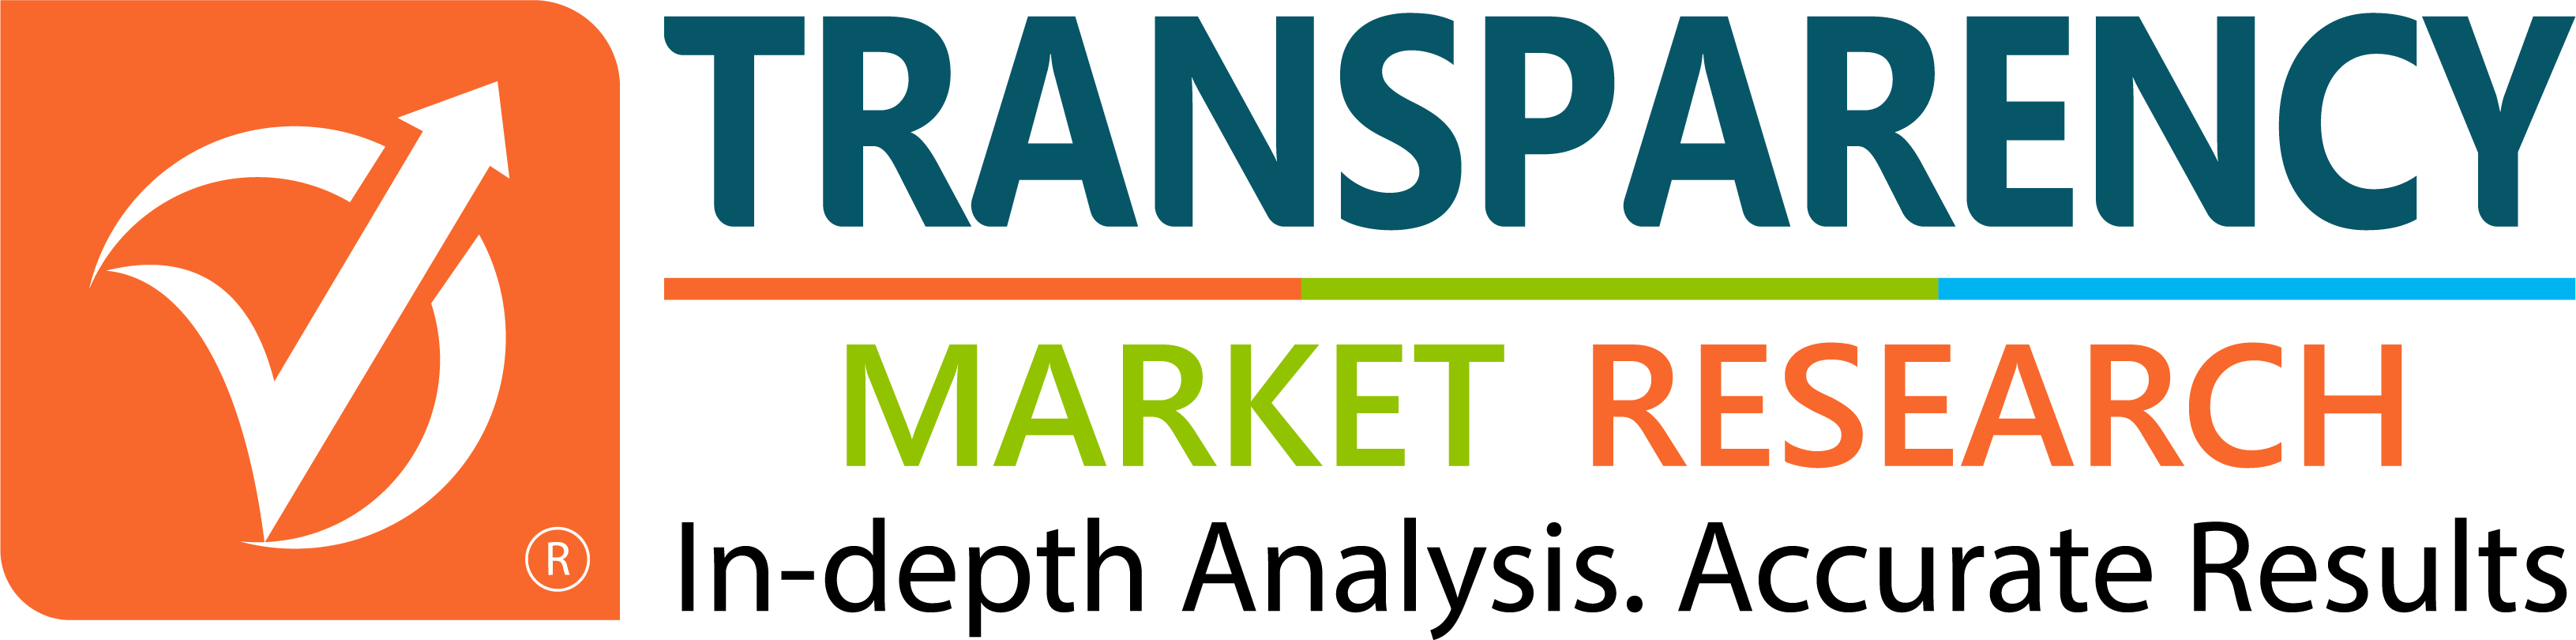 Viscosupplementation Market Shares, Key Players, Applications, Focused Regions and Product Types, 2019-2027